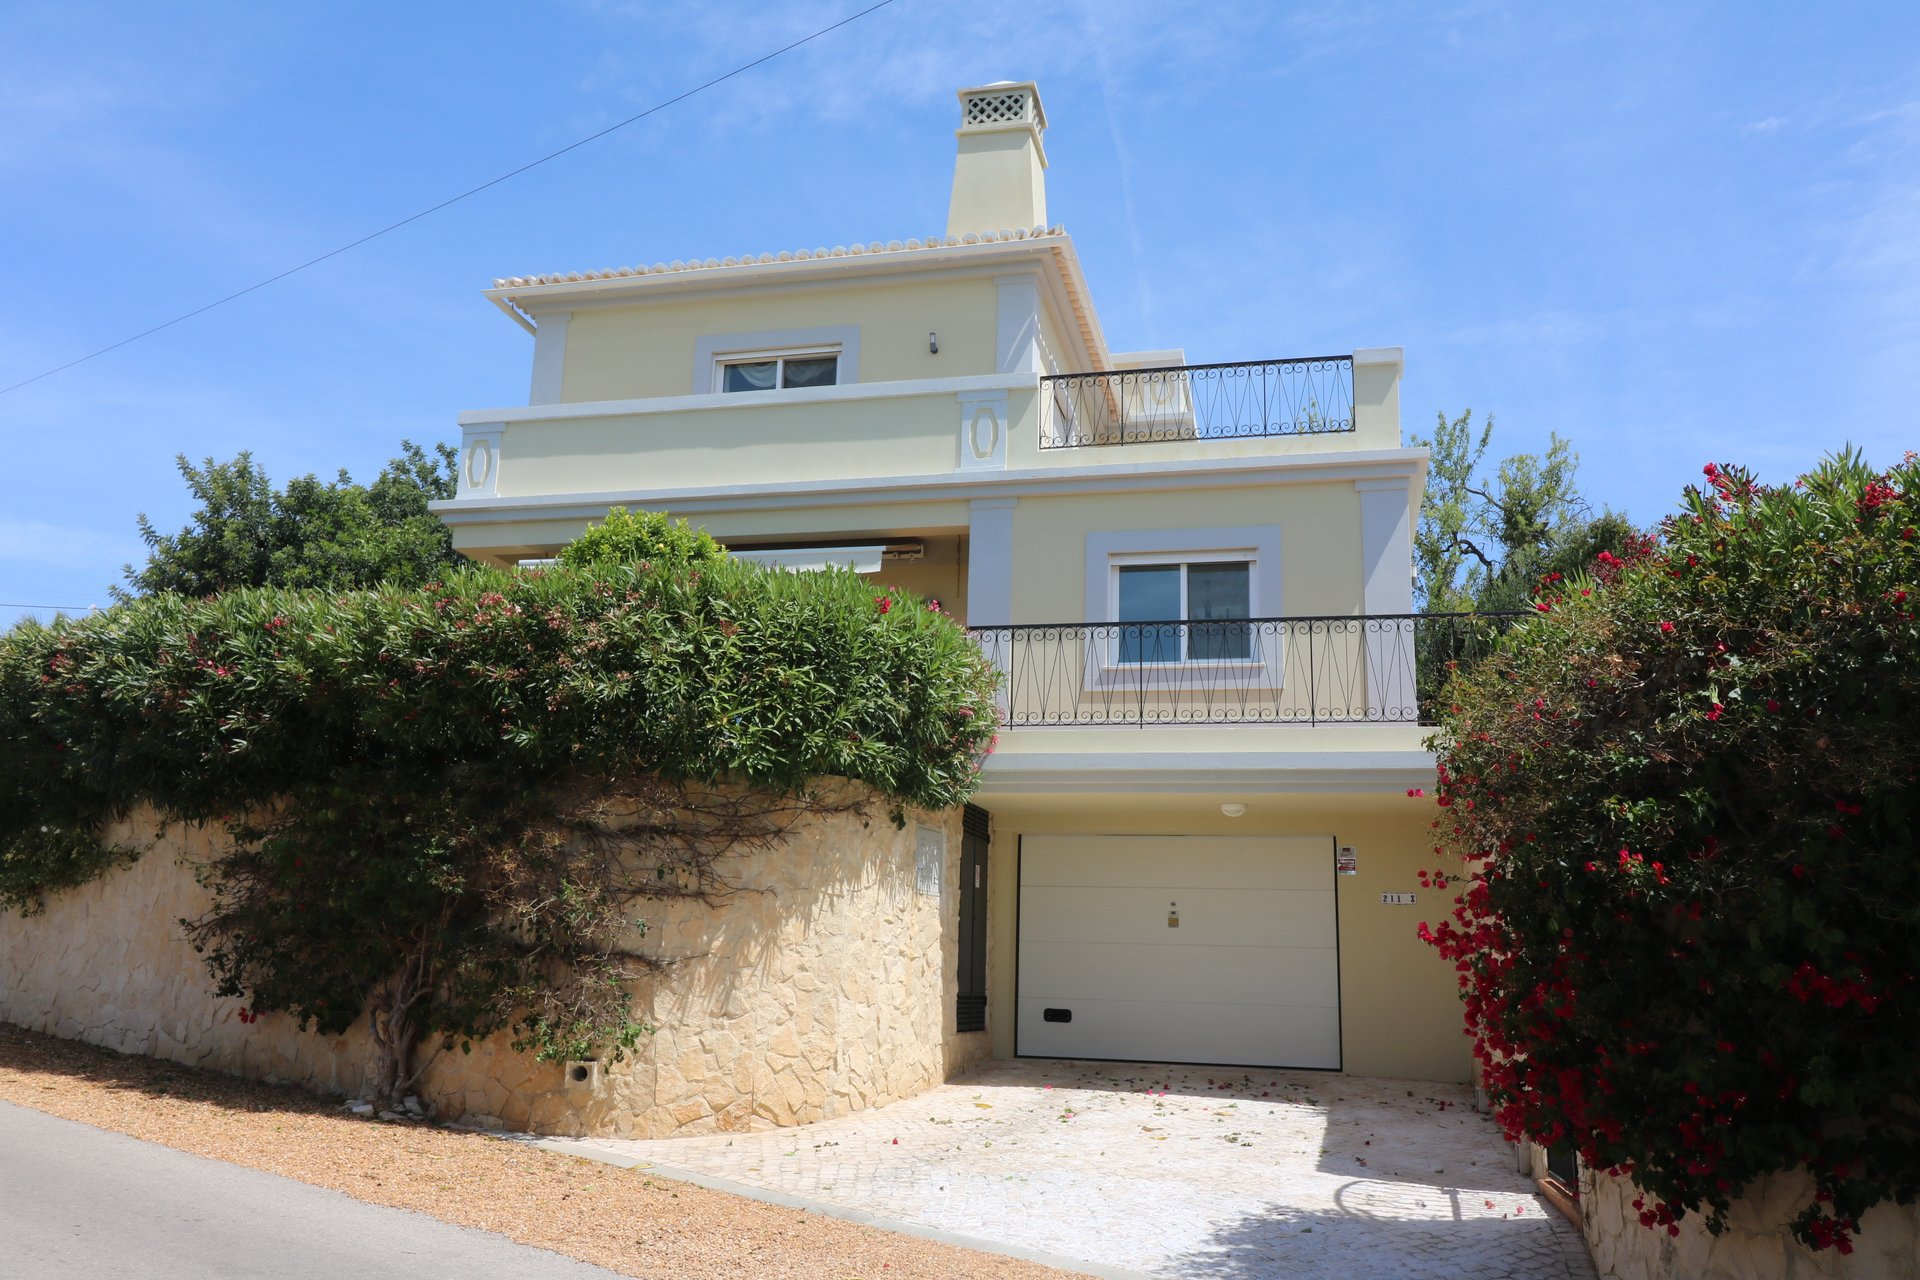 3 Bedroom Villa Santa Barbara de Nexe, Central Algarve Ref: JV10358